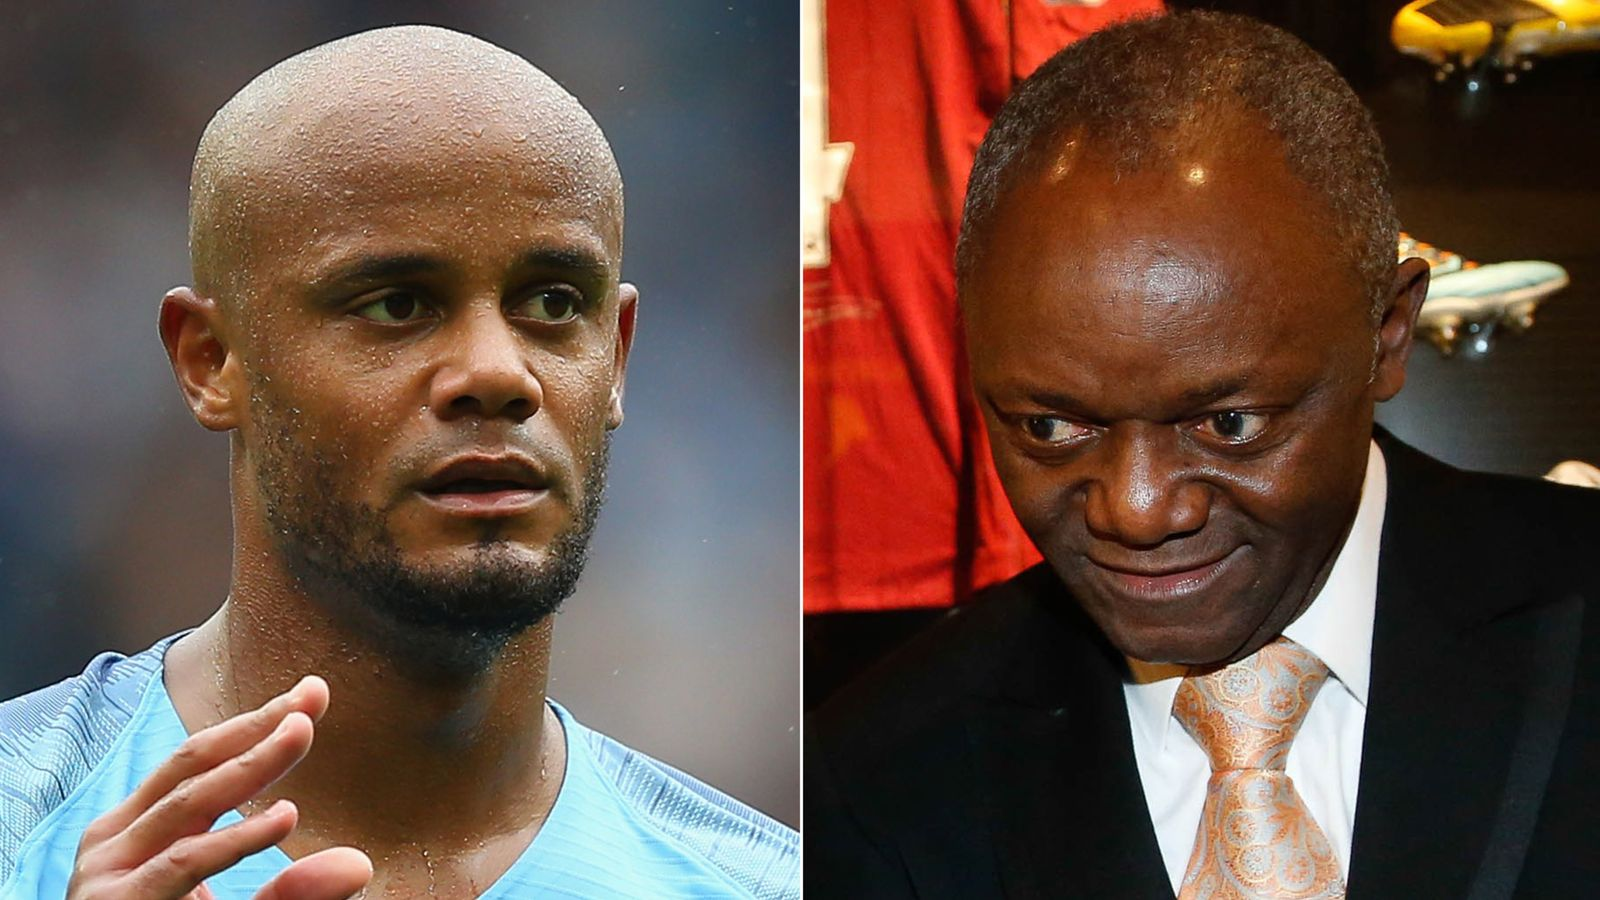 Vincent Kompany's father is Belgium's first black mayor